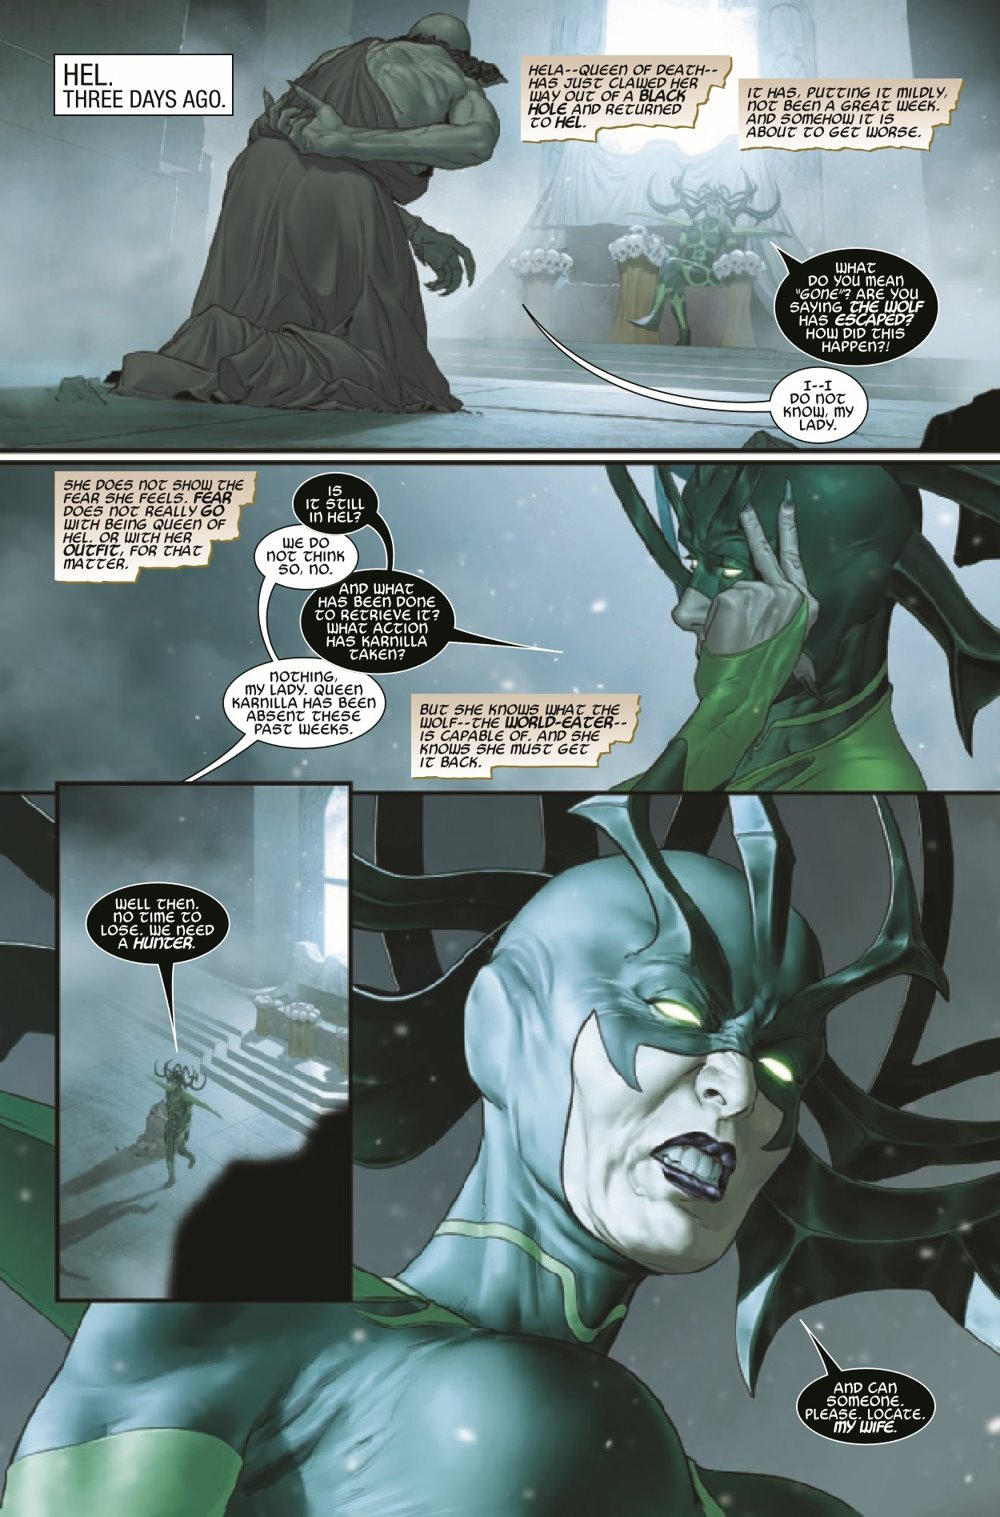 MIGHTYVALKYRIES2021001_Preview-4 ComicList Previews: THE MIGHTY VALKYRIES #1 (OF 5)